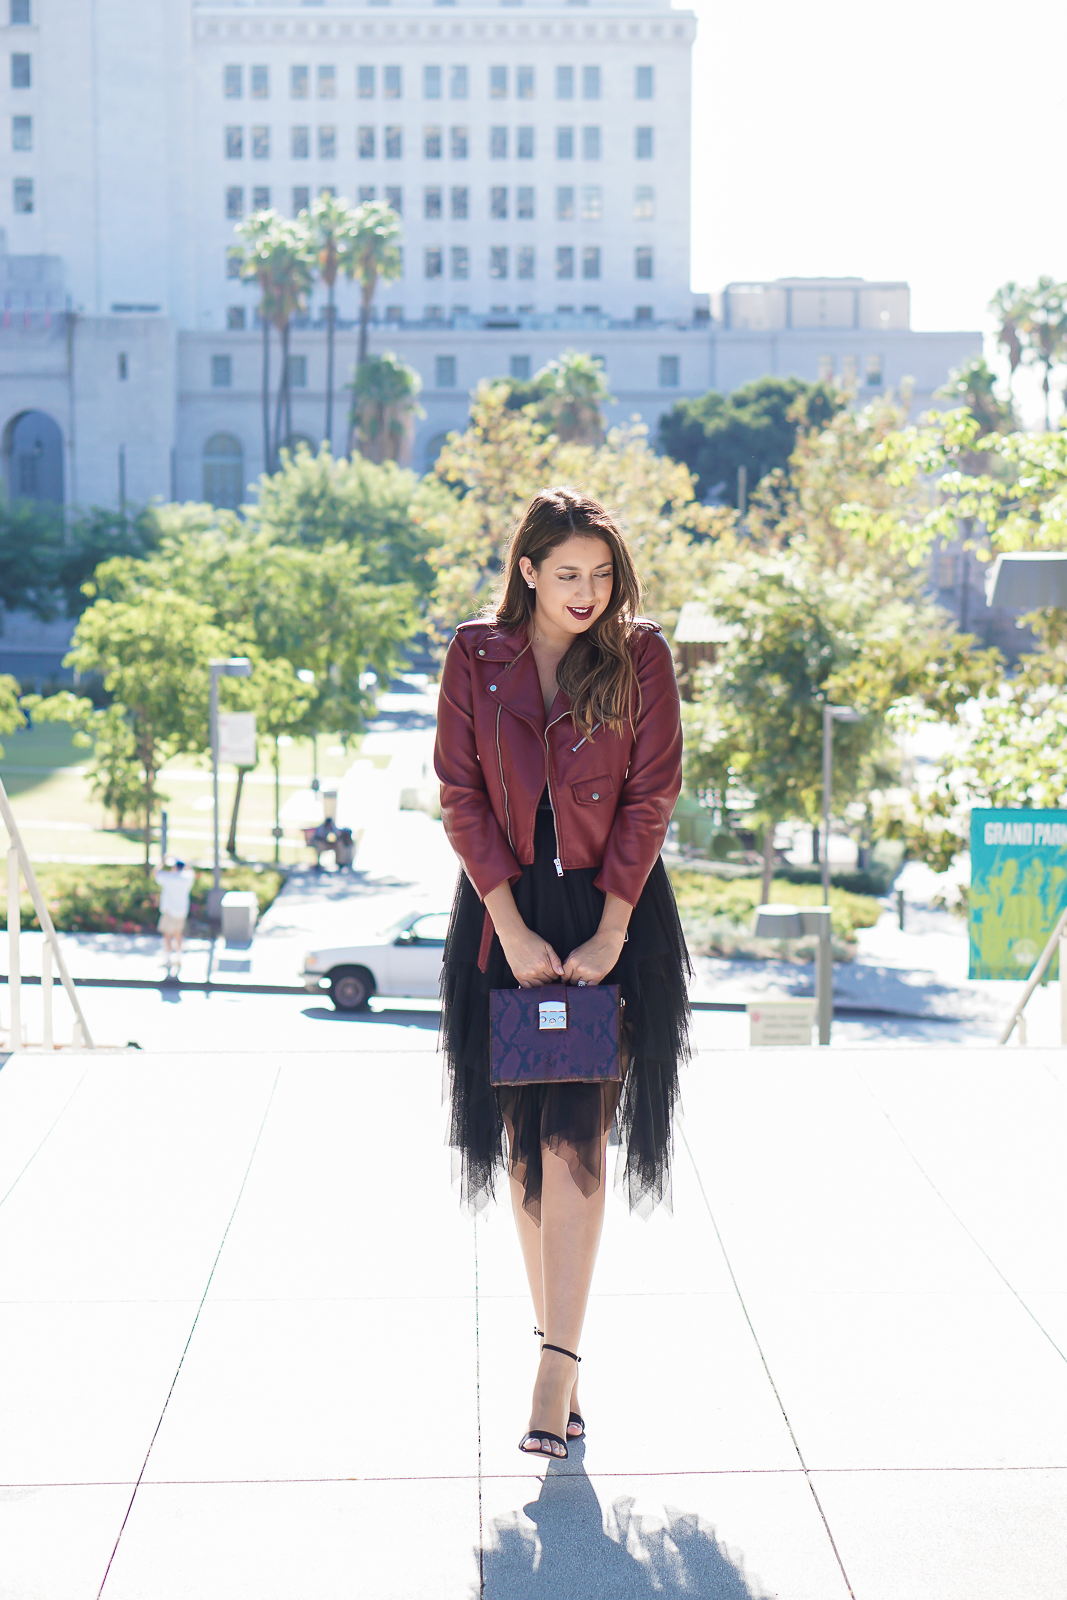 Fashion, Fall Fashion, Zara best pieces for fall, Zara Red Leather Effect Jacket, Zara Burgundy Moto Jacket, Perfect Moto Jacket for Fall, Nasty Gal Just Like Heaven Tutu Skirt, Black Zara Tutu Skirt, Zara Minaudière Briefcase Bag, Boxy Top Handel Faux Snakeskin Bag, Fall Princess, Los Angeles City Hall, Downtown Los Angeles